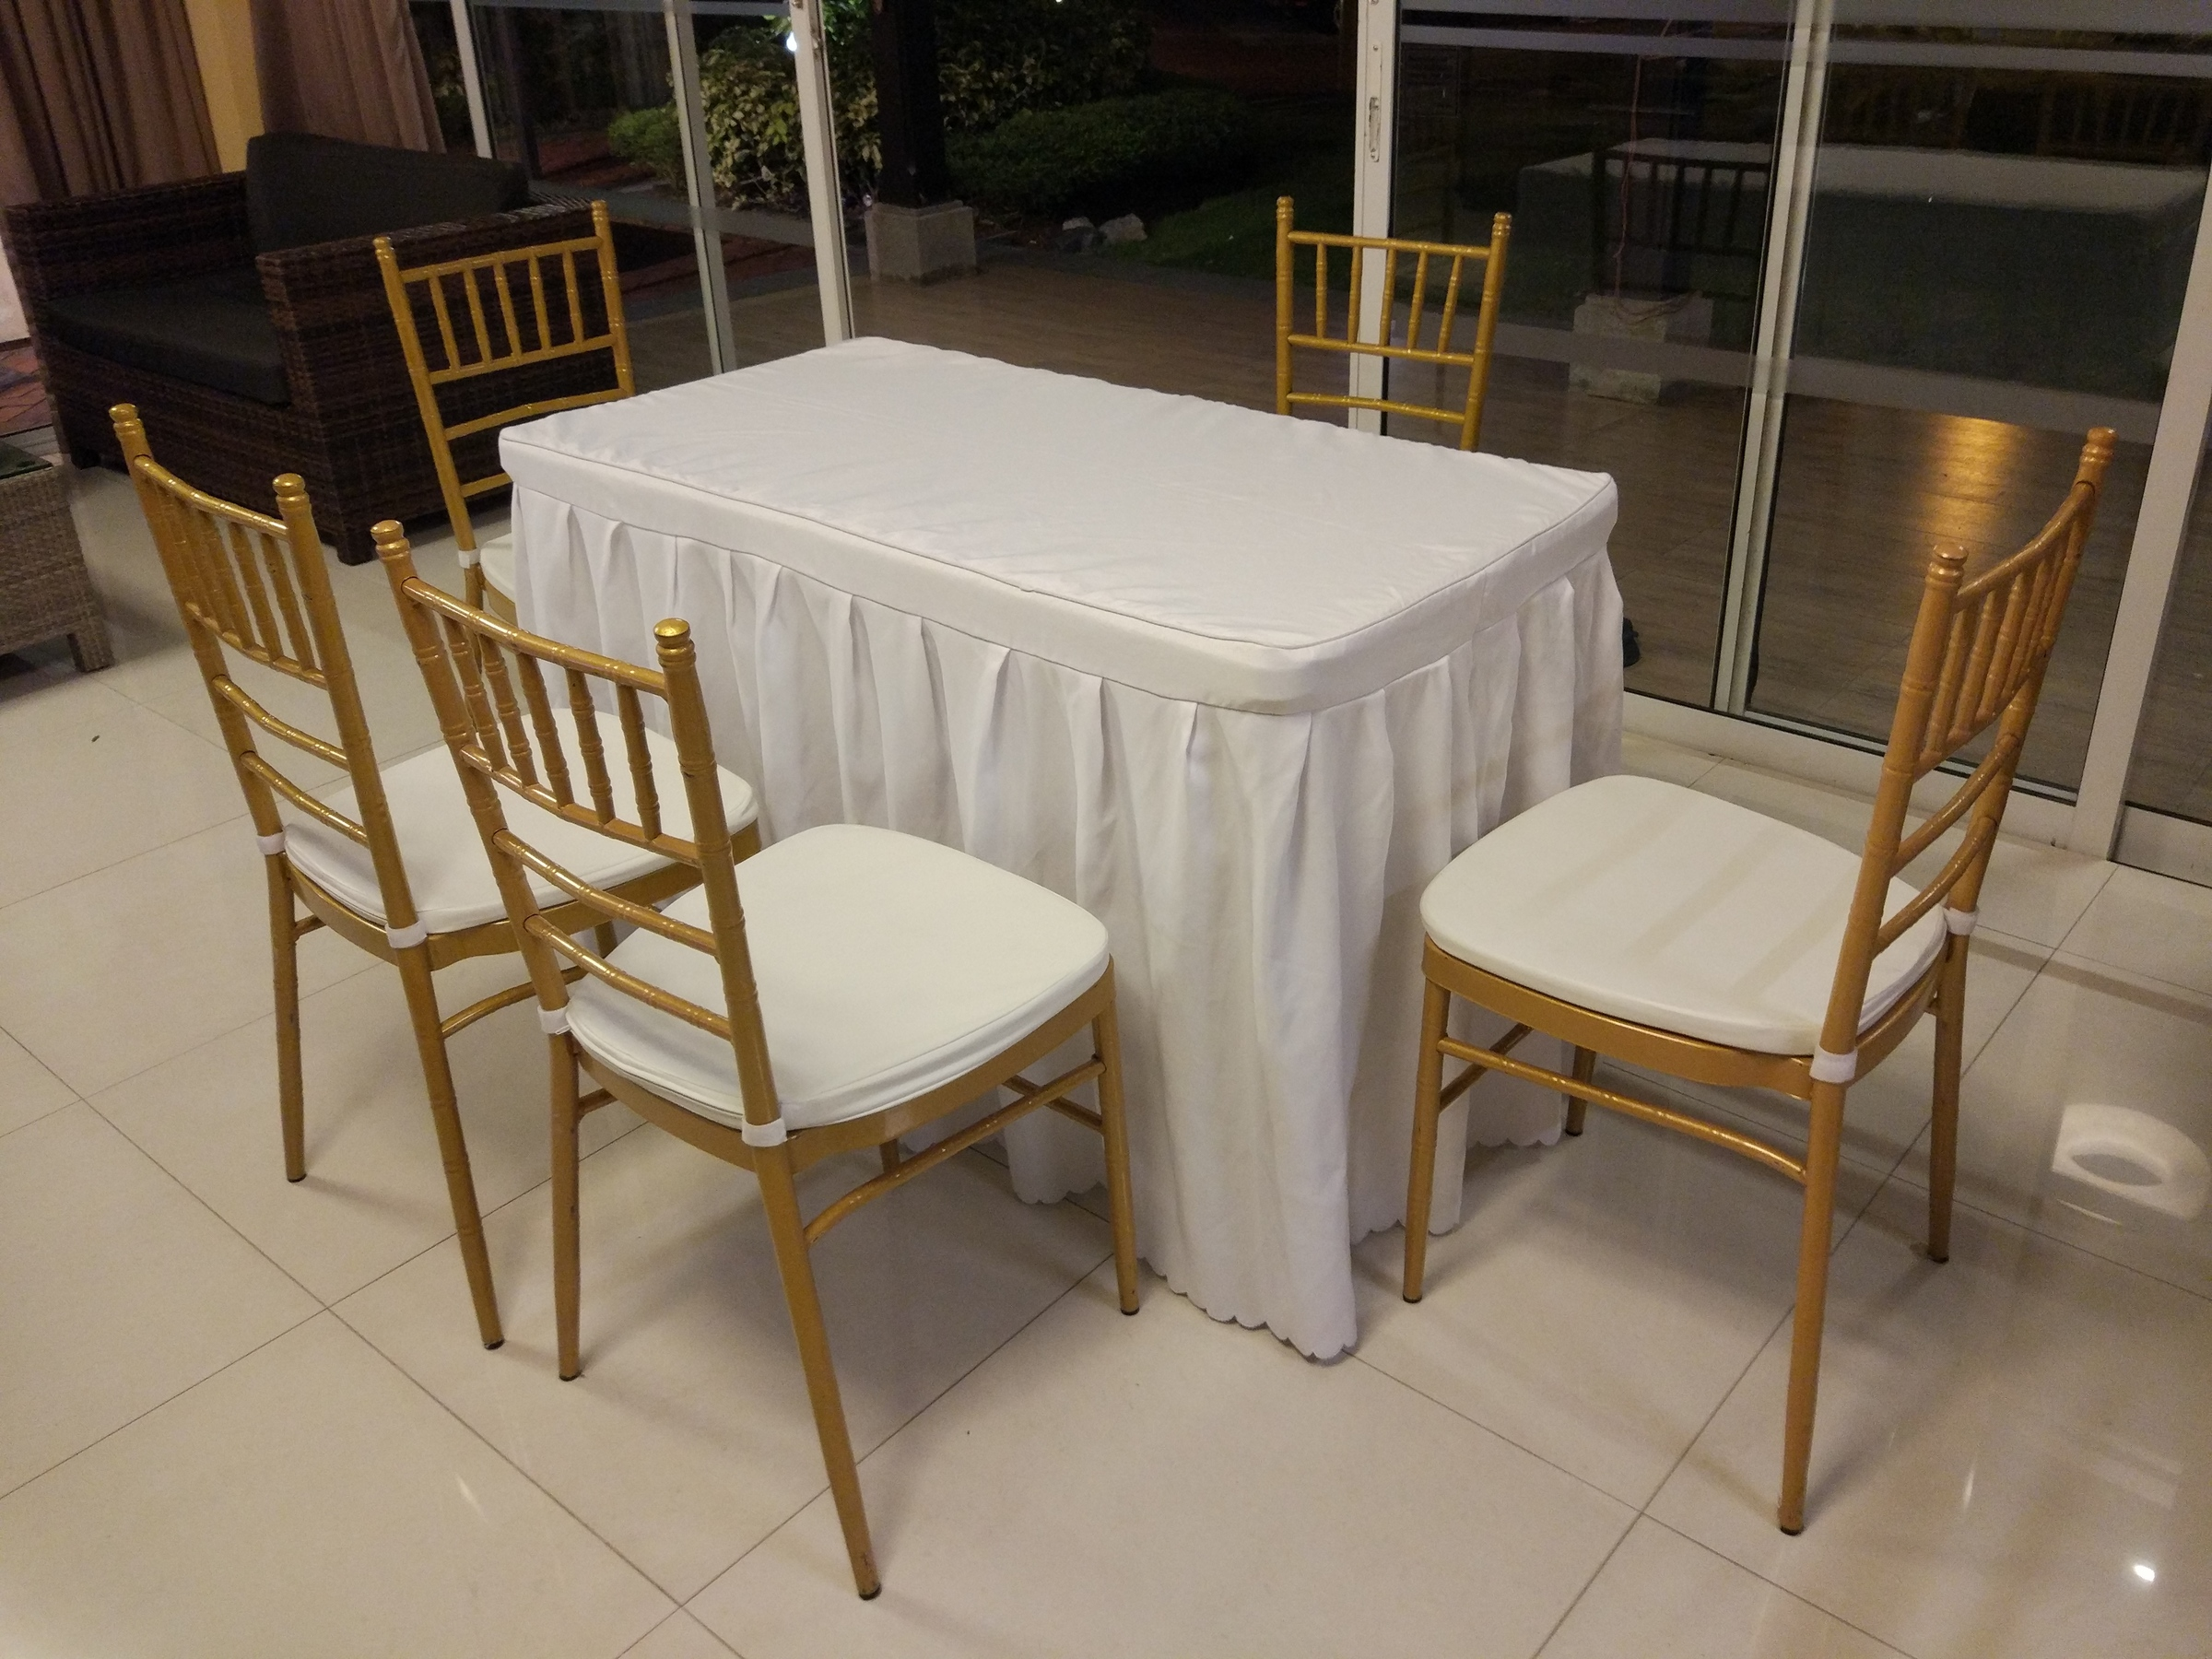 Rom table and chairs rental set b for Chair table rentals